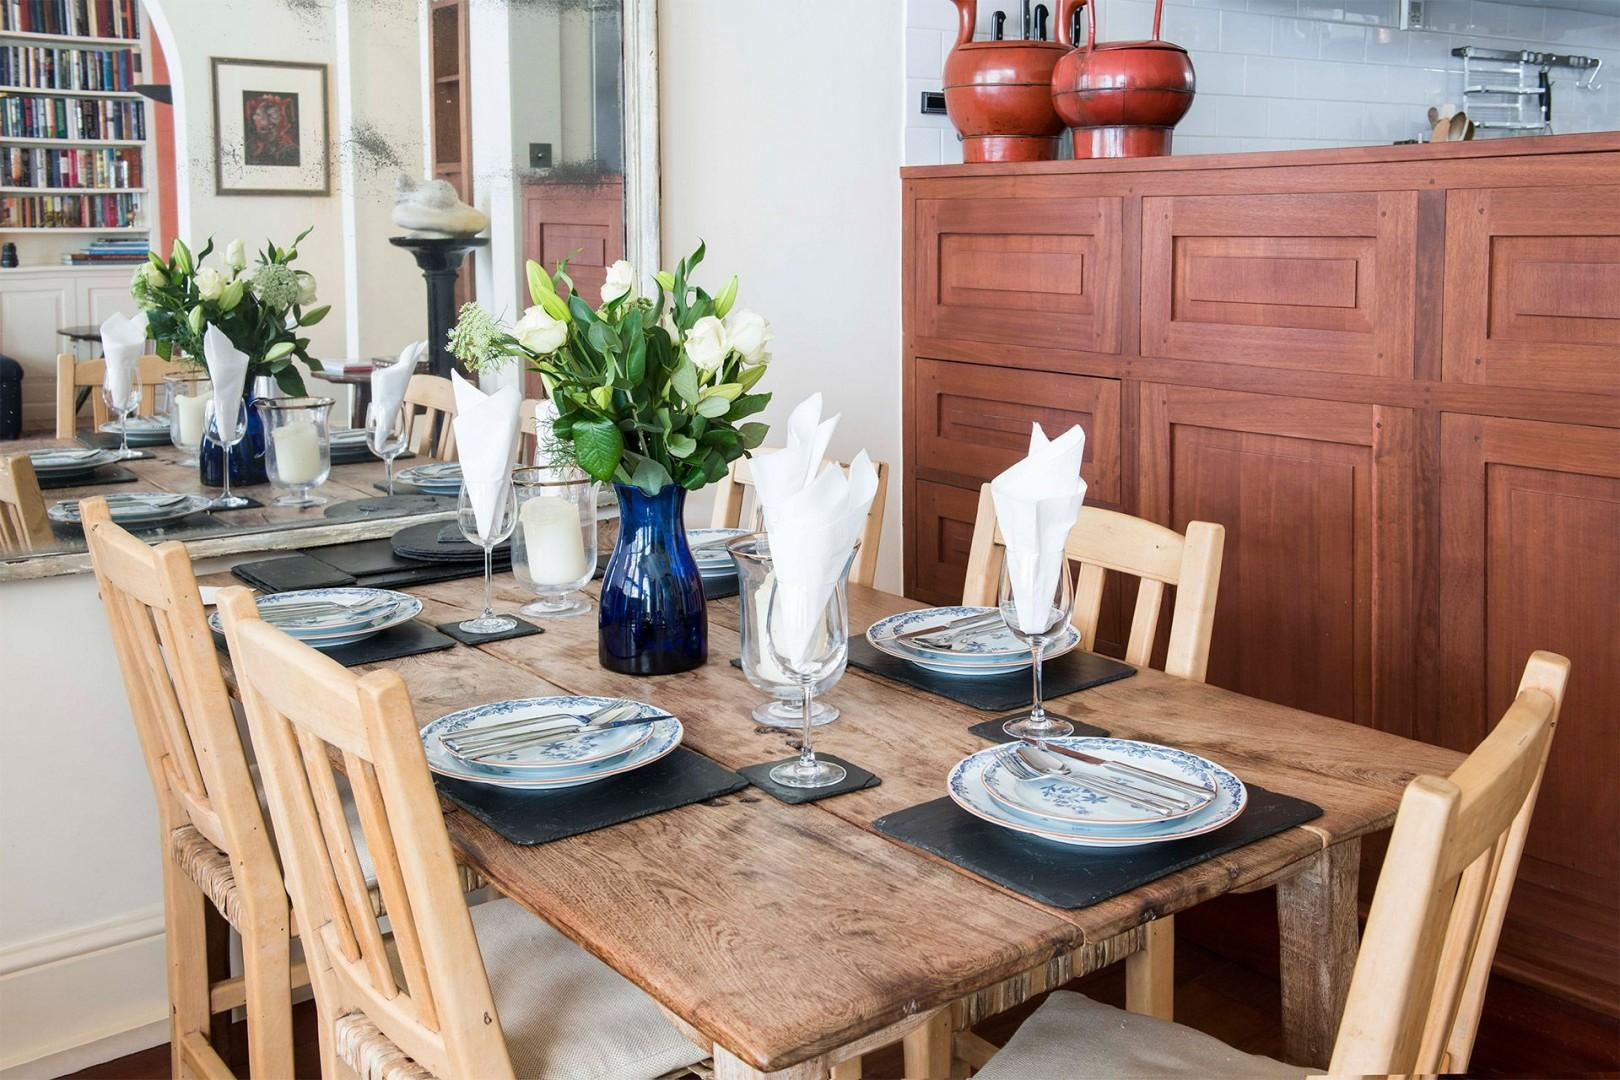 Set an elegant table for your next London dinner party